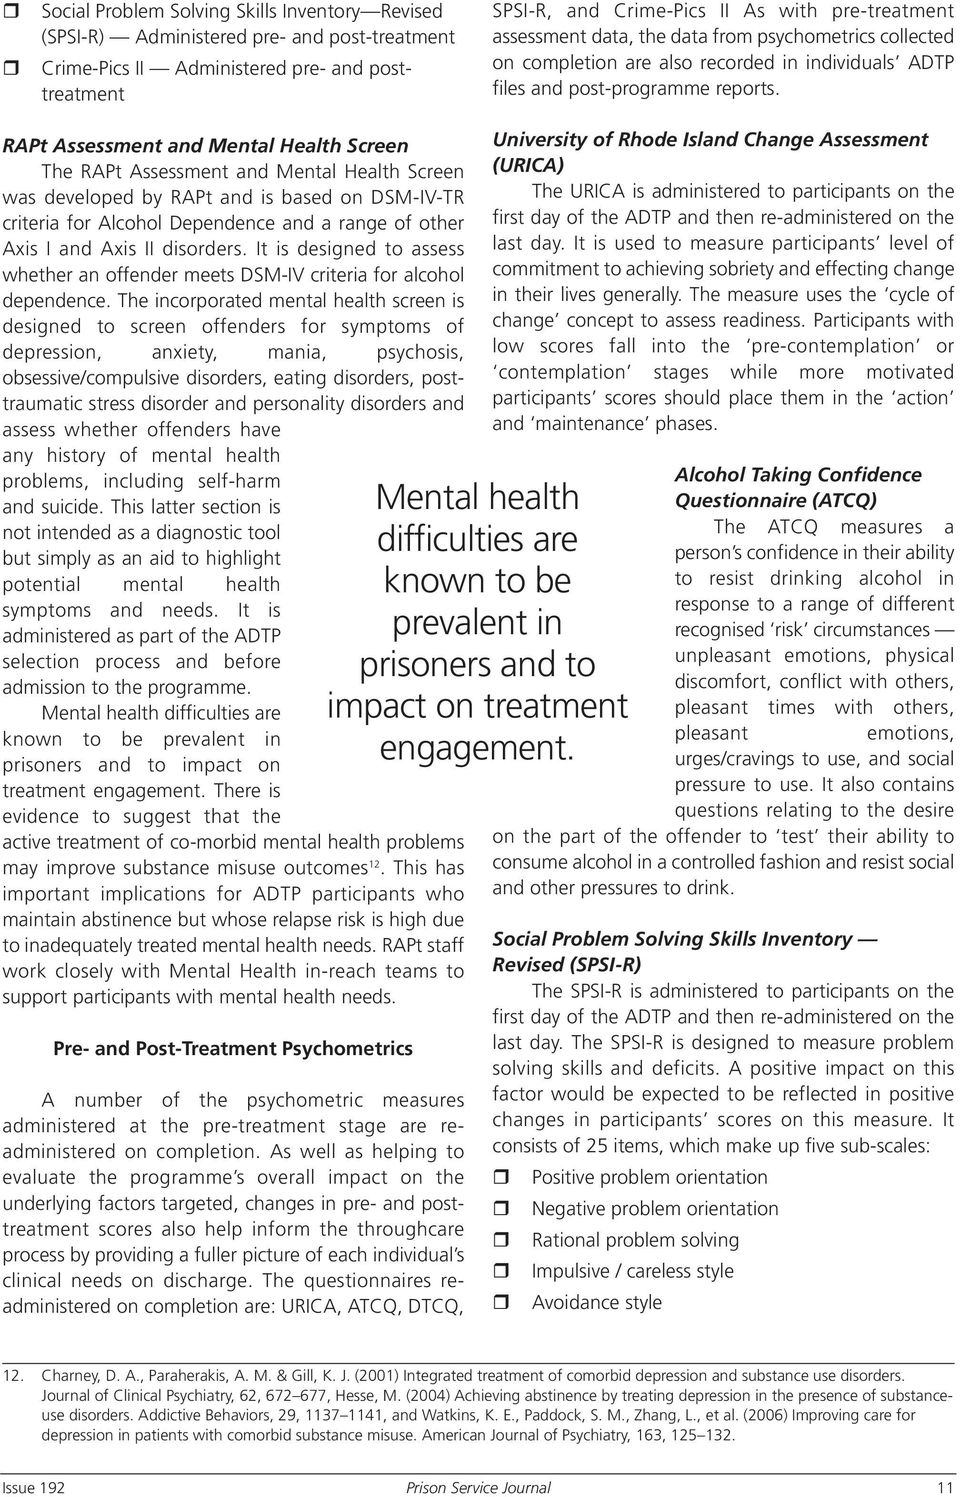 RAPt Assessment and Mental Health Screen The RAPt Assessment and Mental Health Screen was developed by RAPt and is based on DSM-IV-TR criteria for Alcohol Dependence and a range of other Axis I and